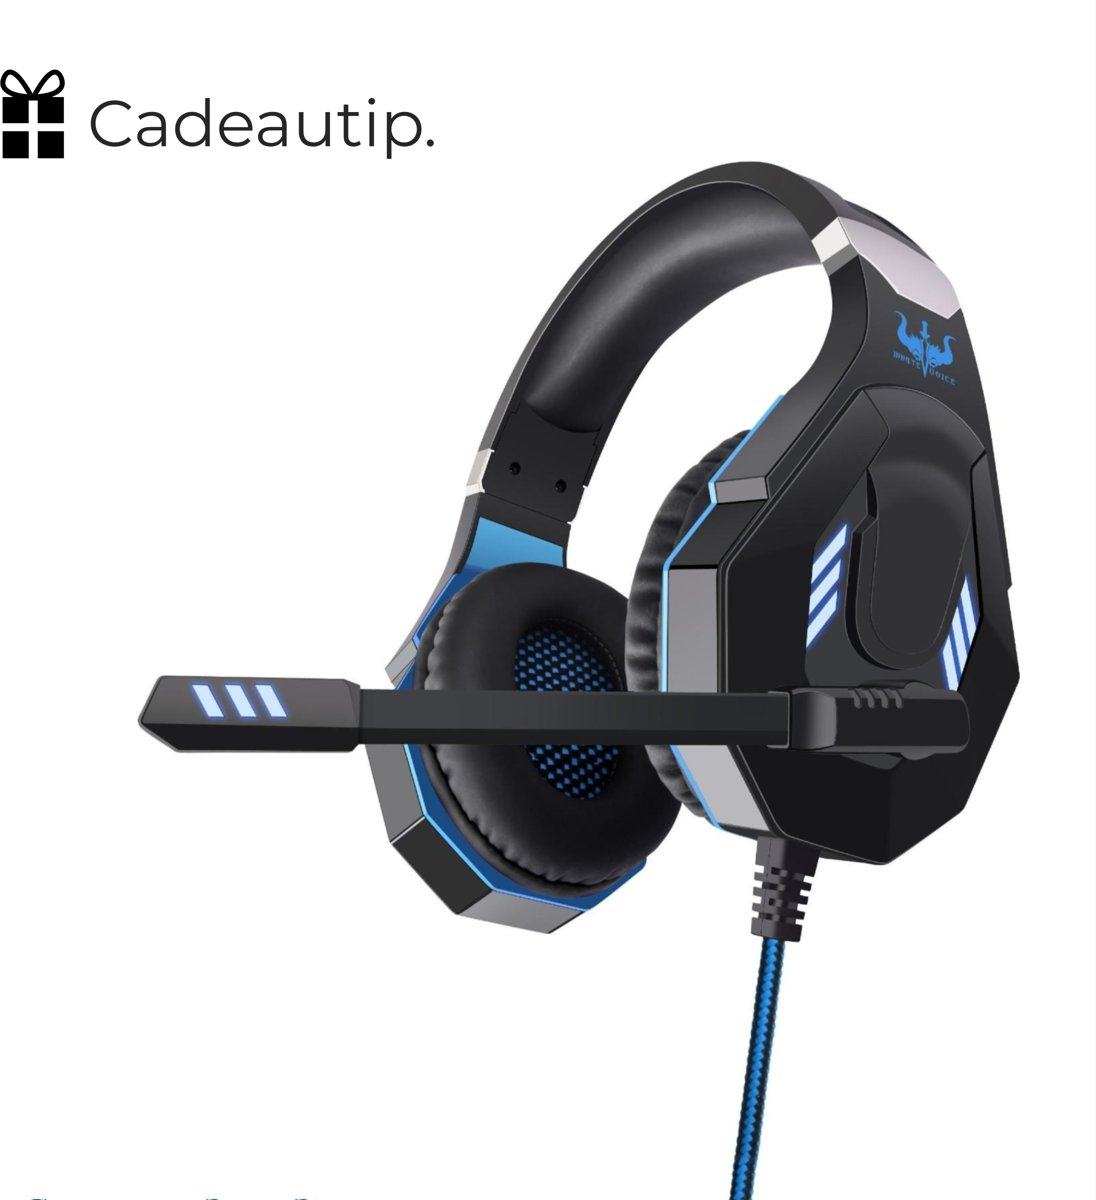 Ovleng GT93 RGB Gaming Headset - Zwart/Blauw | Stereo Gaming Headset - LED Game Headset - Geschikt voor o.a. PS4, Xbox, PC, Smartphone, Tablet, Switch & meer!